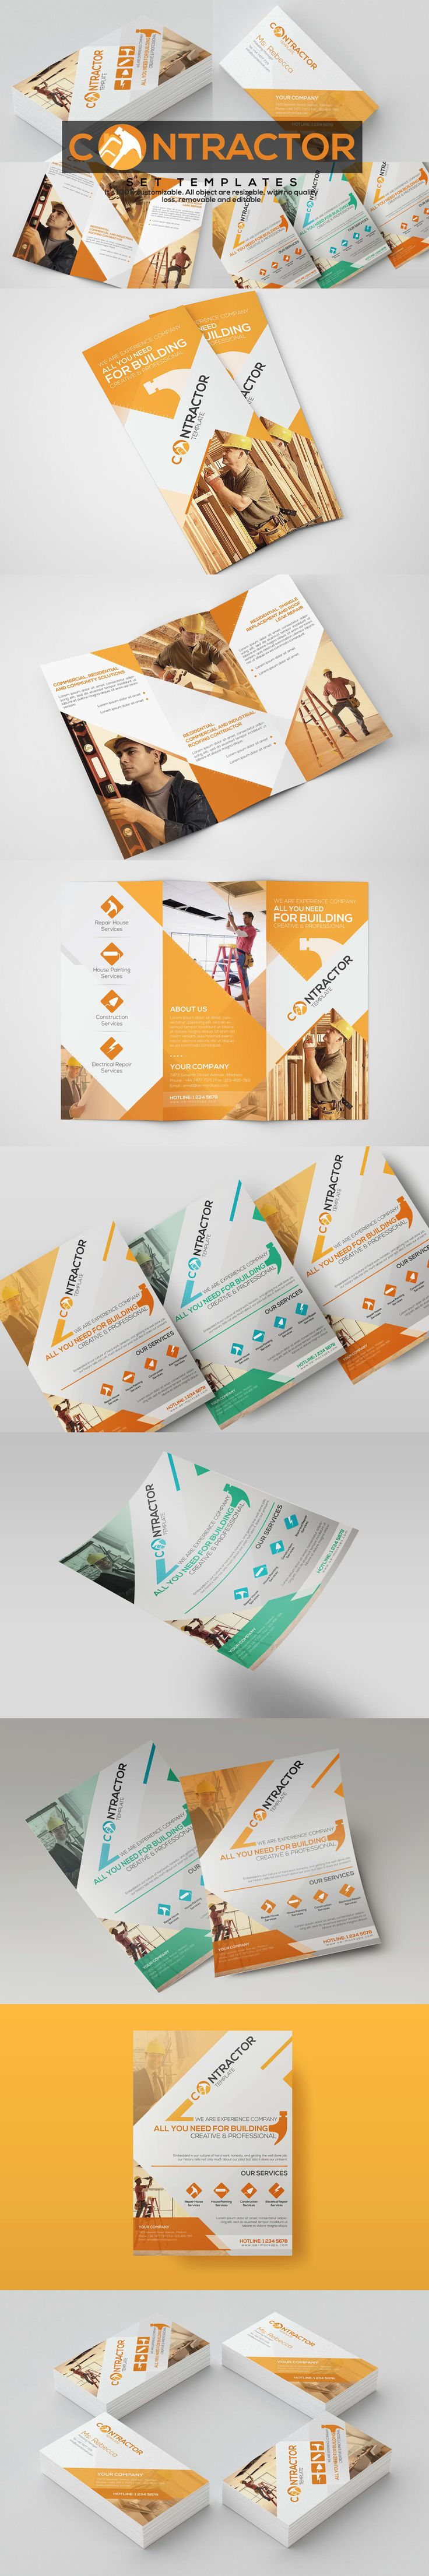 Contractor - Set Templates - Trifold Brochure, Flyer, Business Card